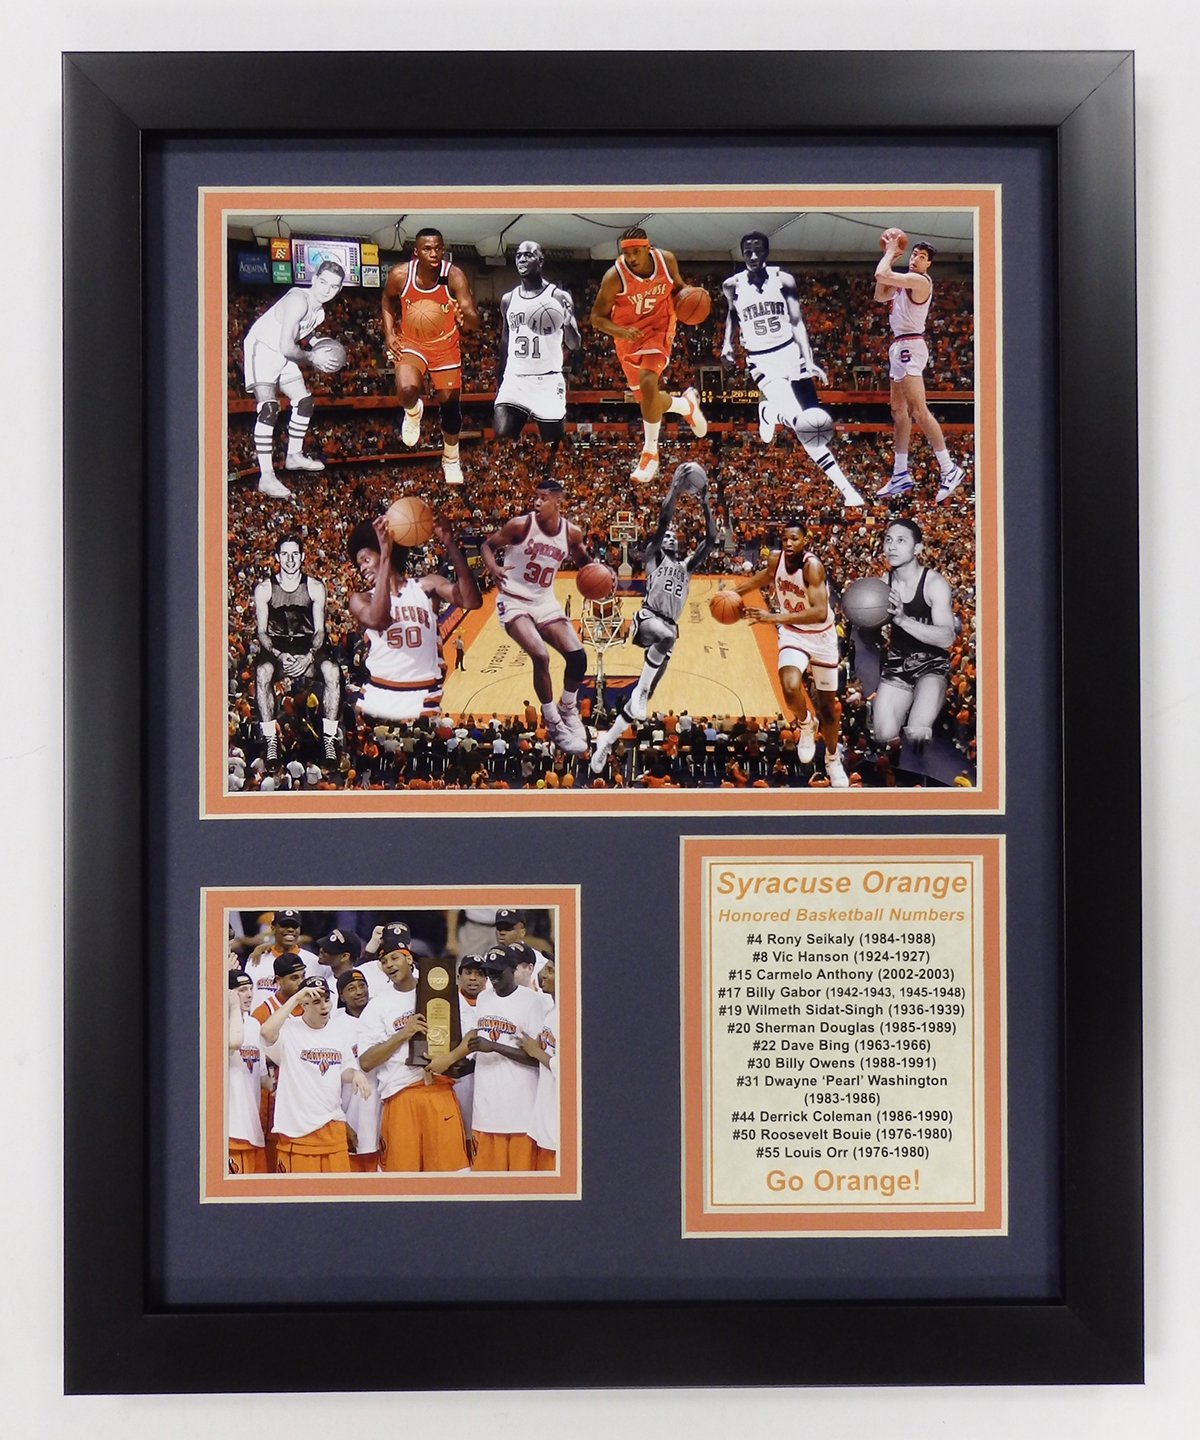 Legends Never Die NCAA All-Time Greats Framed Photo Collage 11 by 14-Inch 12017U